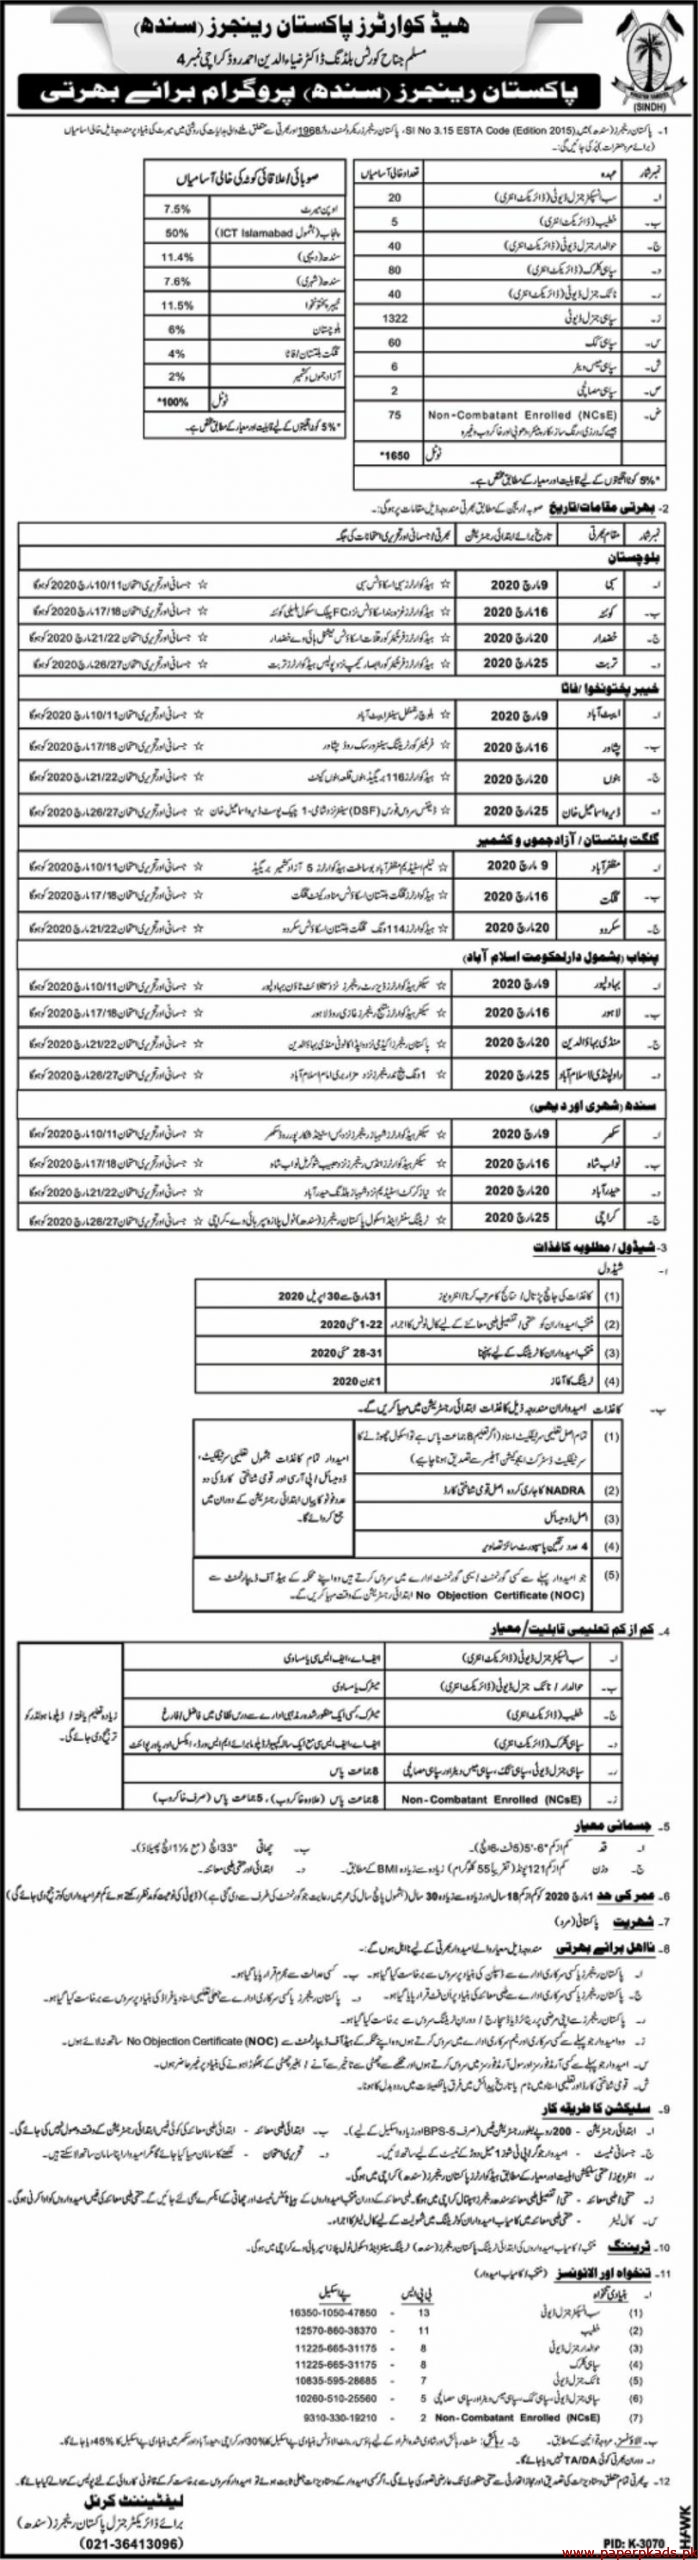 Pakistan Rangers Jobs 2020 Latest